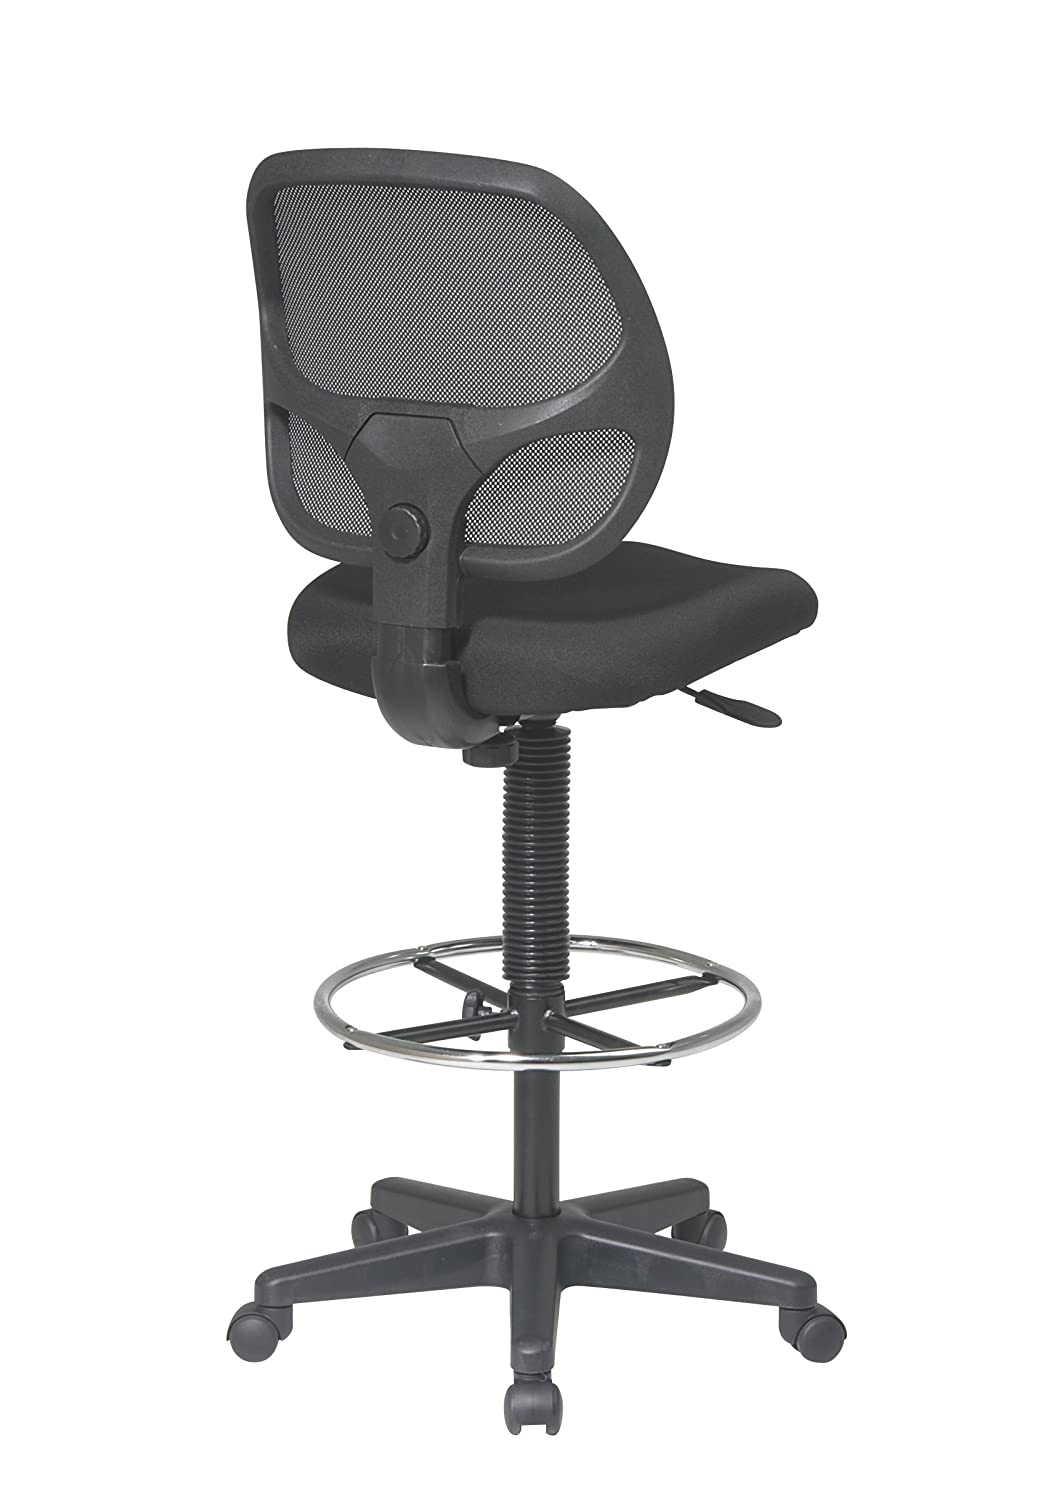 Amazon com  Office Star Deluxe Mesh Back Drafting Chair with 20  Diameter Adjustable  Footring  Black Fabric Seat  Kitchen   DiningAmazon com  Office Star Deluxe Mesh Back Drafting Chair with 20  . Office Star Height Adjustable Drafting Chair With Footring. Home Design Ideas